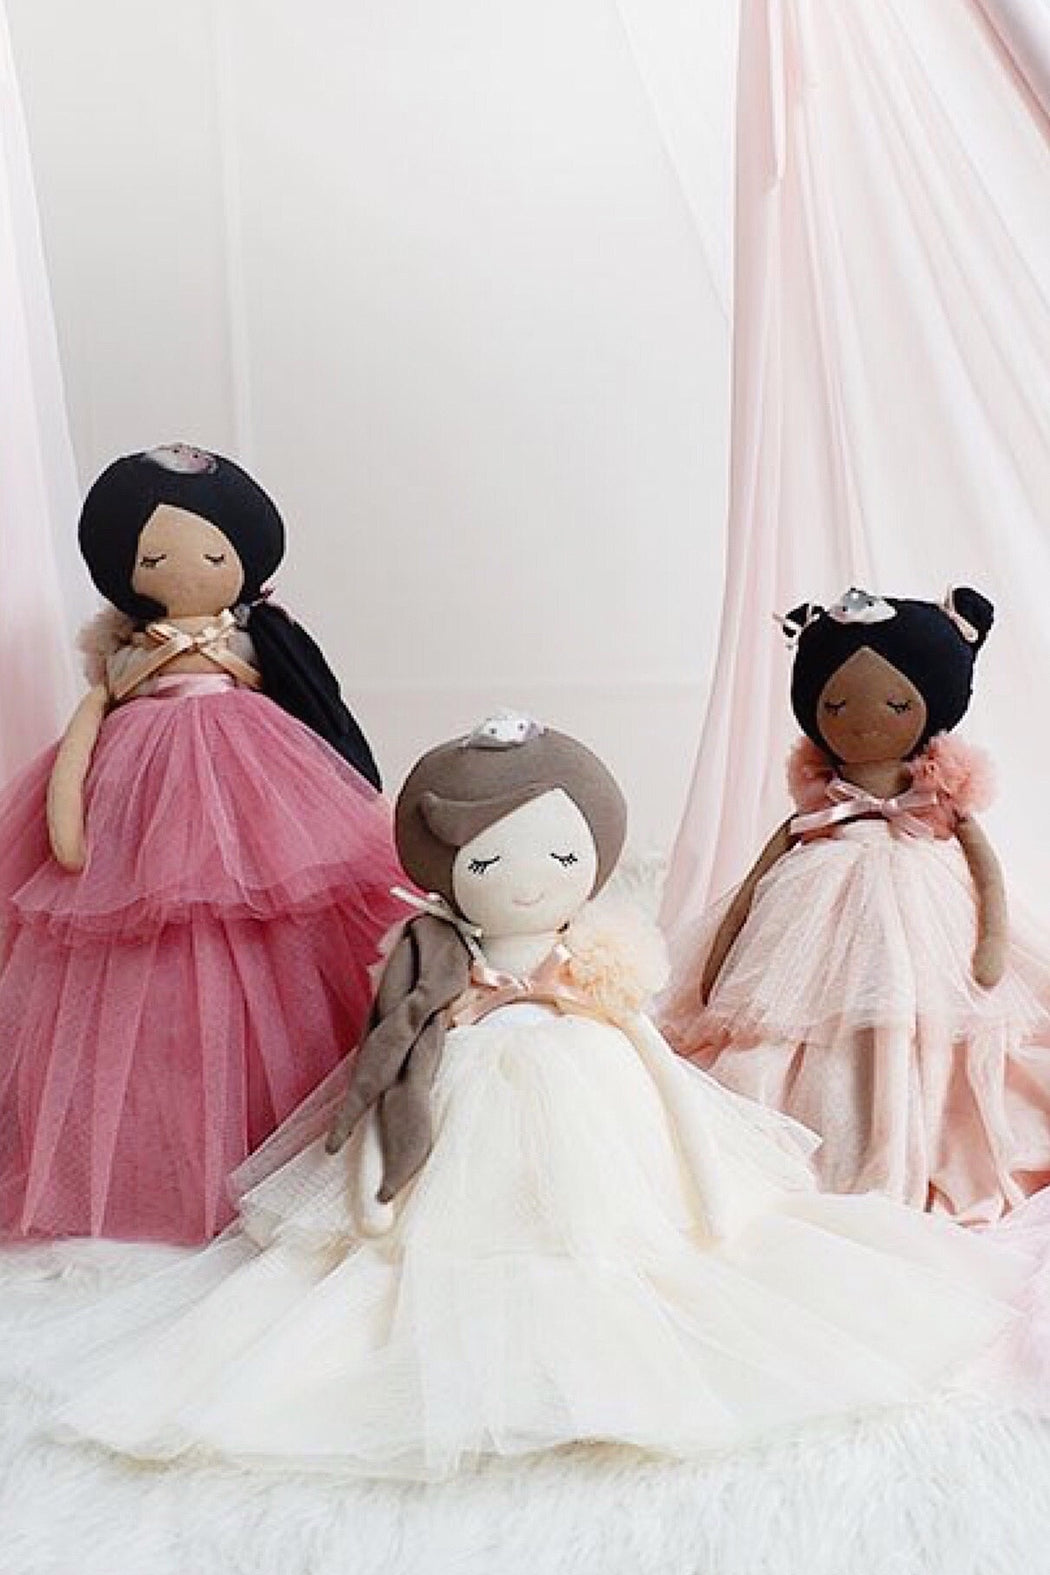 Dreamy Princess Isla, Toy, Spinkie - 3LittlePicks